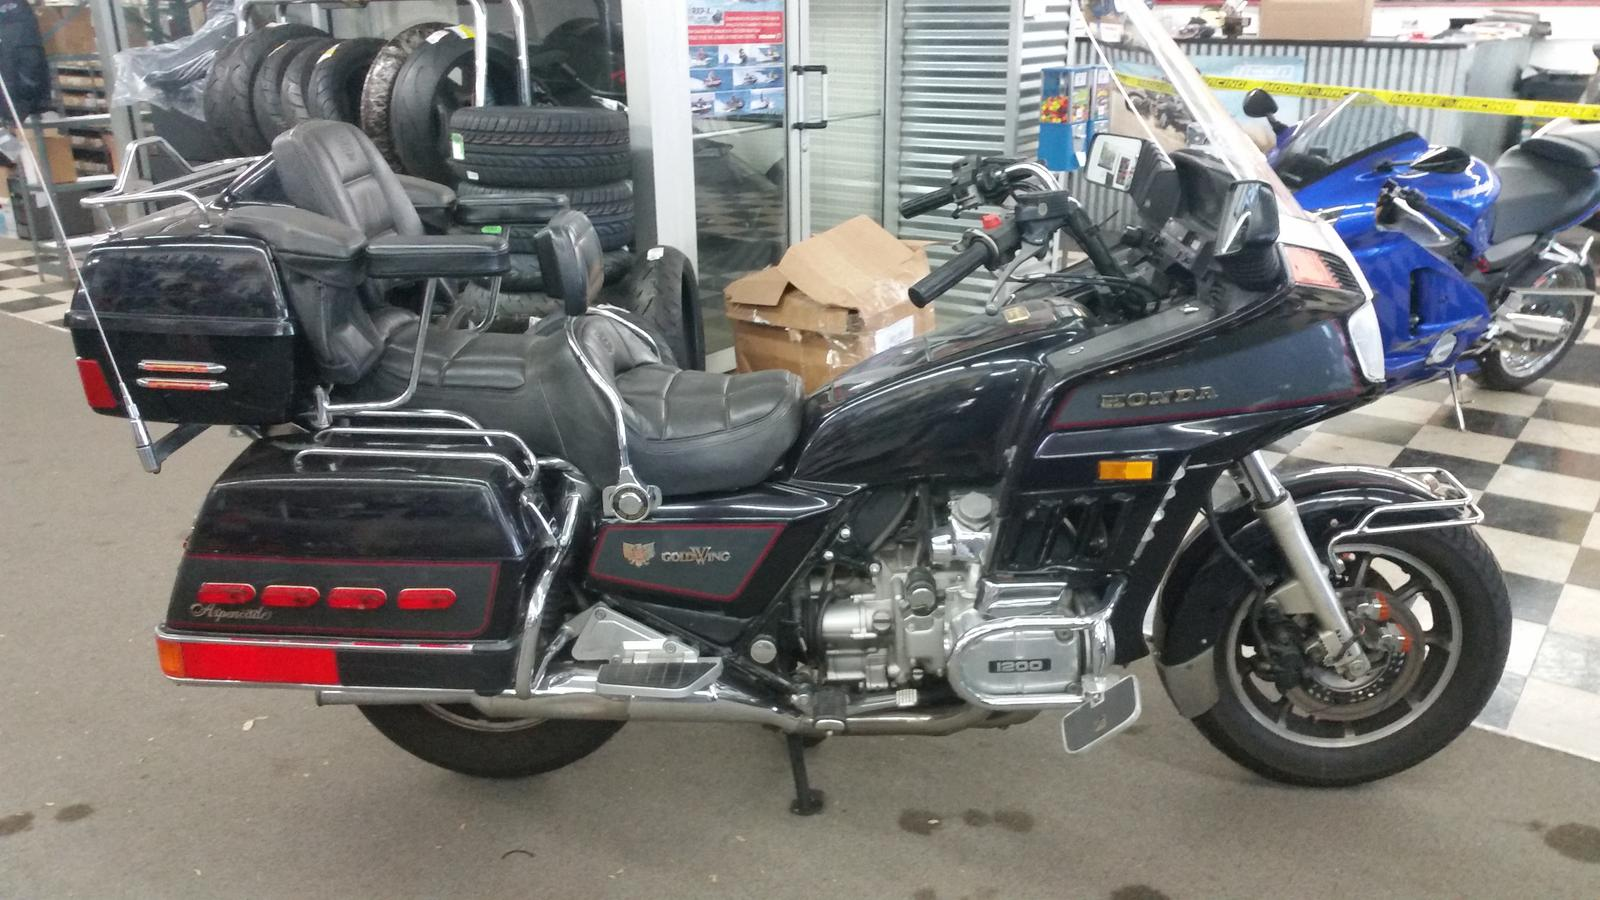 cycle gold litchfield img csc sales in il sale niehaus for honda viper wing htm navi inventory xm xmcsc